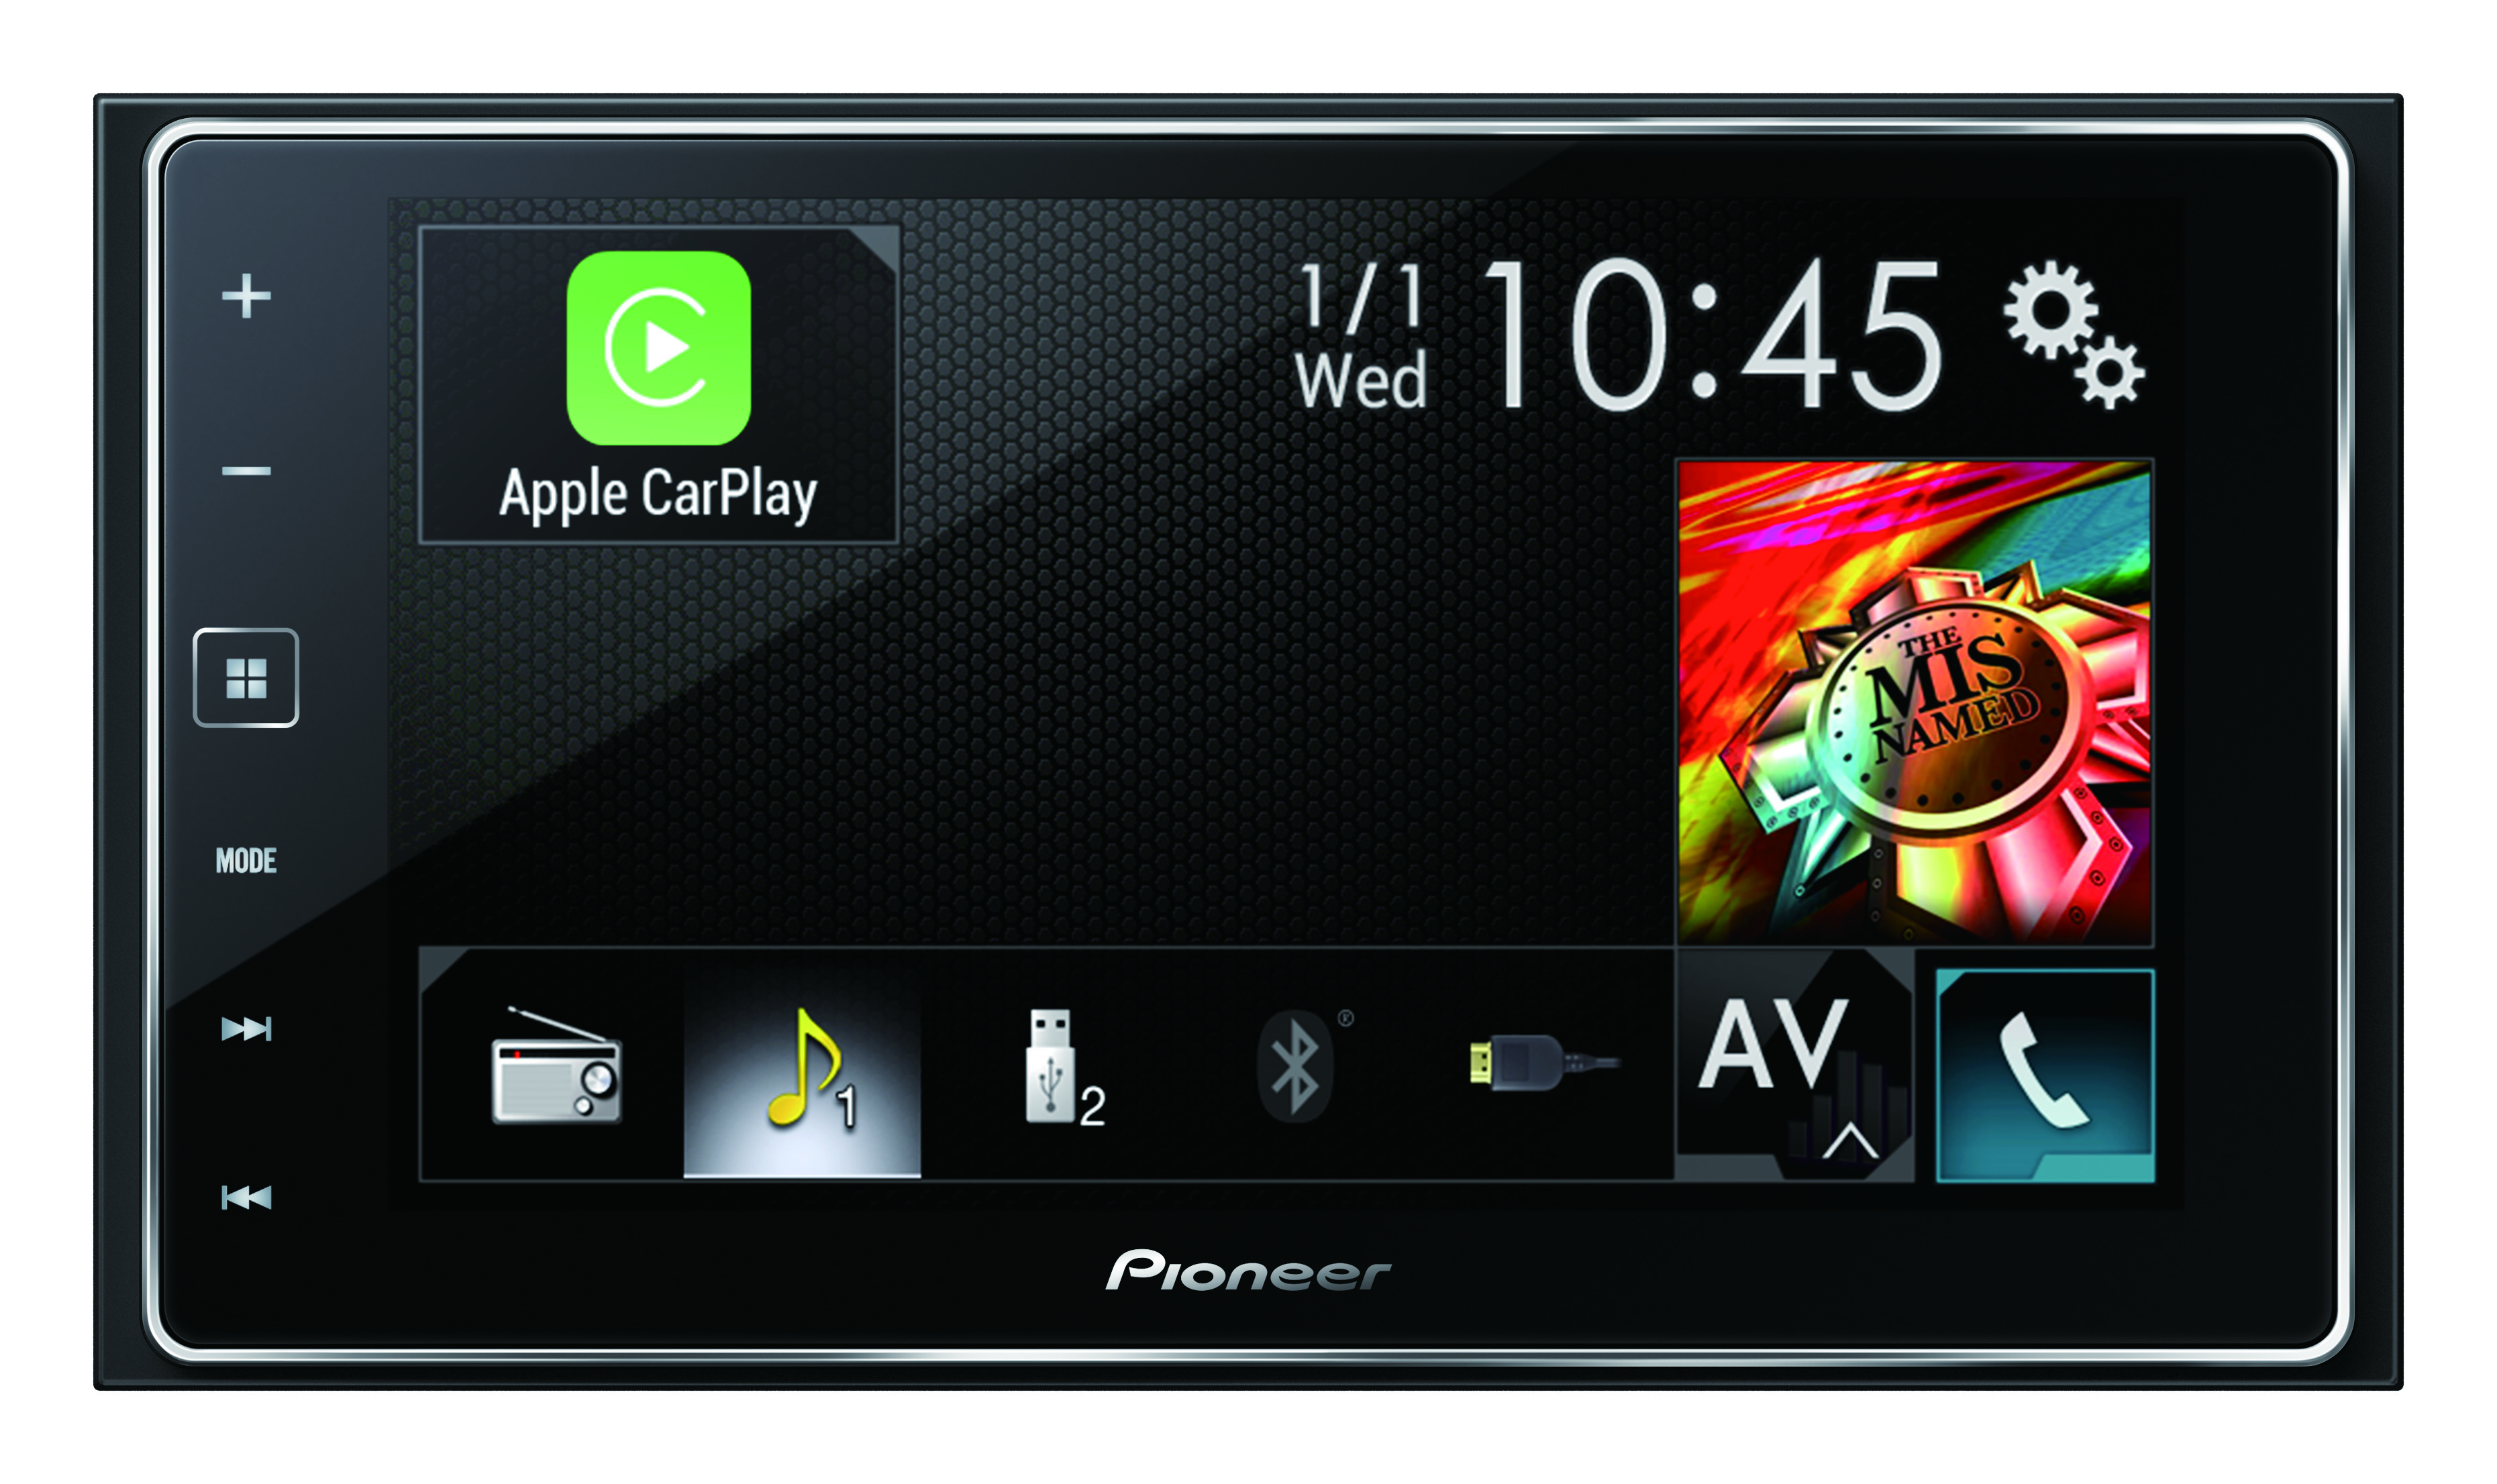 pioneer apple carplay. power up! pioneer apple carplay a